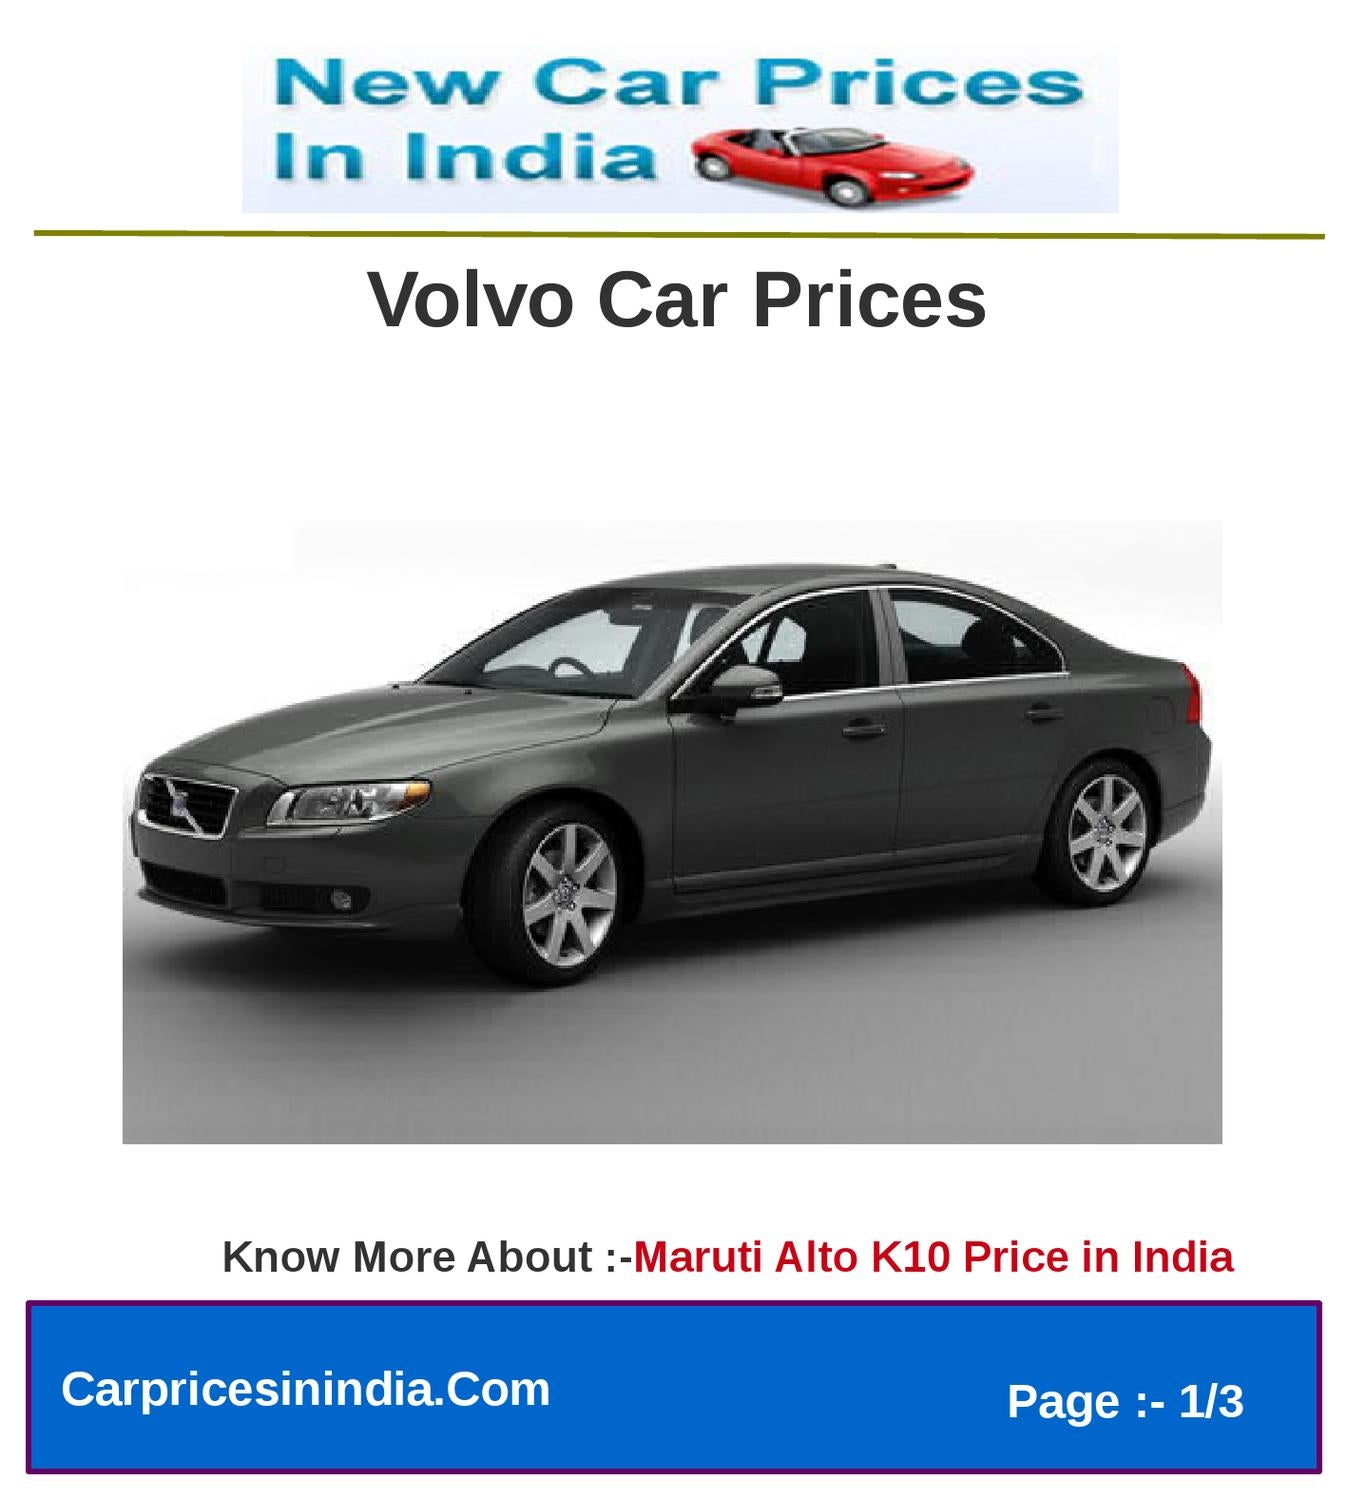 Volvo Pricing: Volvo Car Prices By Microsite Team